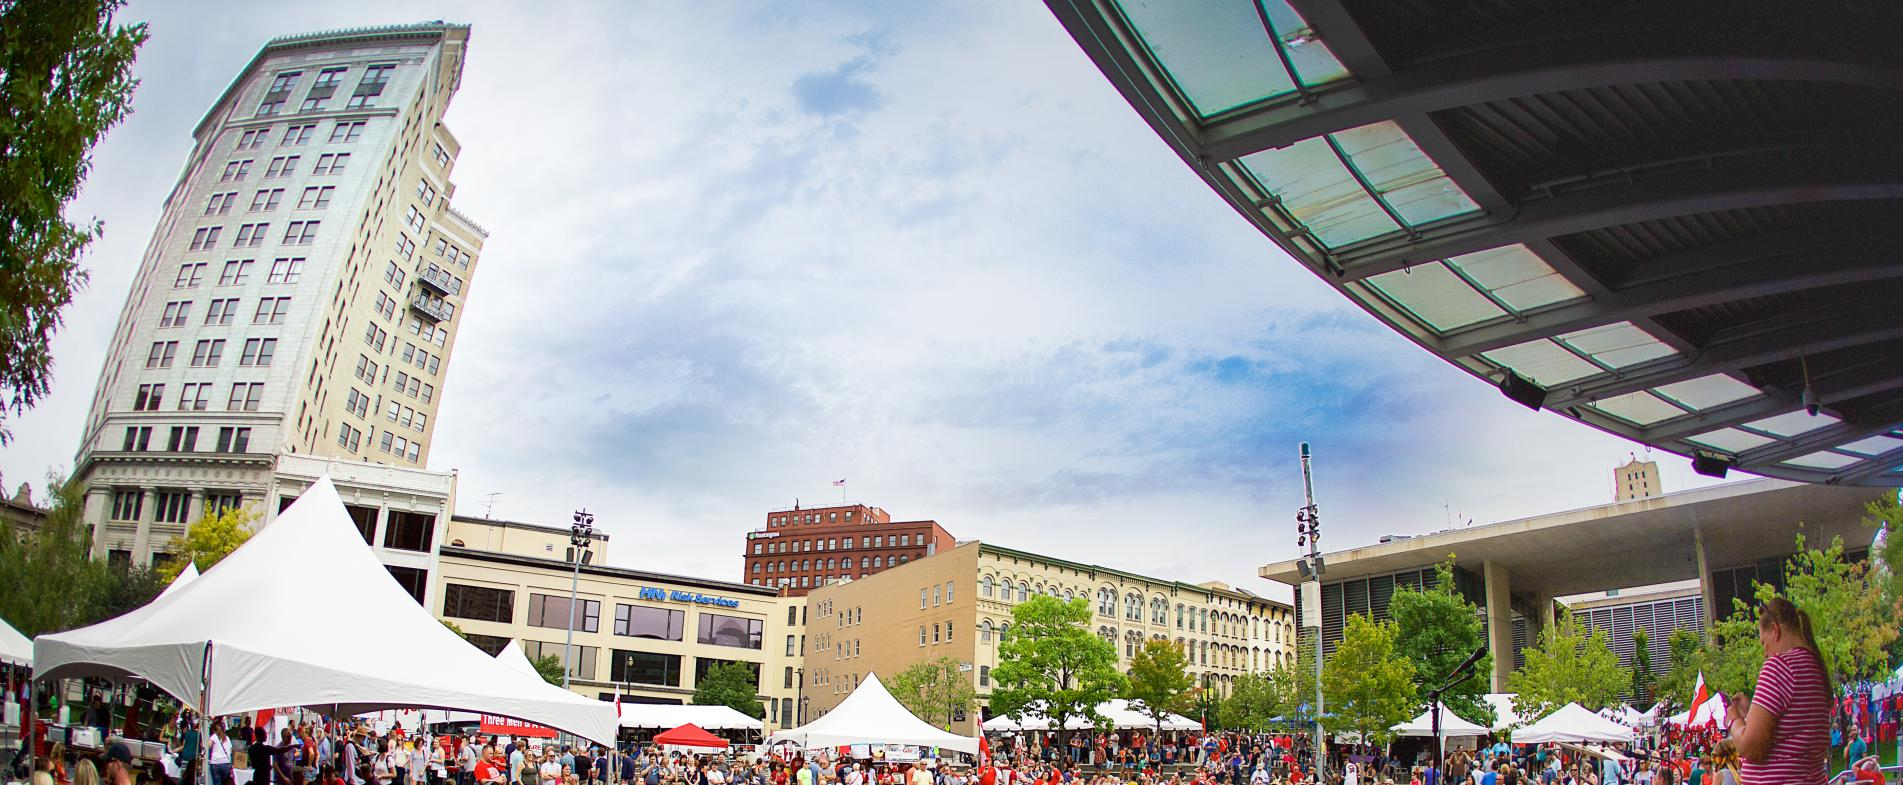 A weekend full of authentic Polish food and music await during the Grand Rapids Polish Festival.